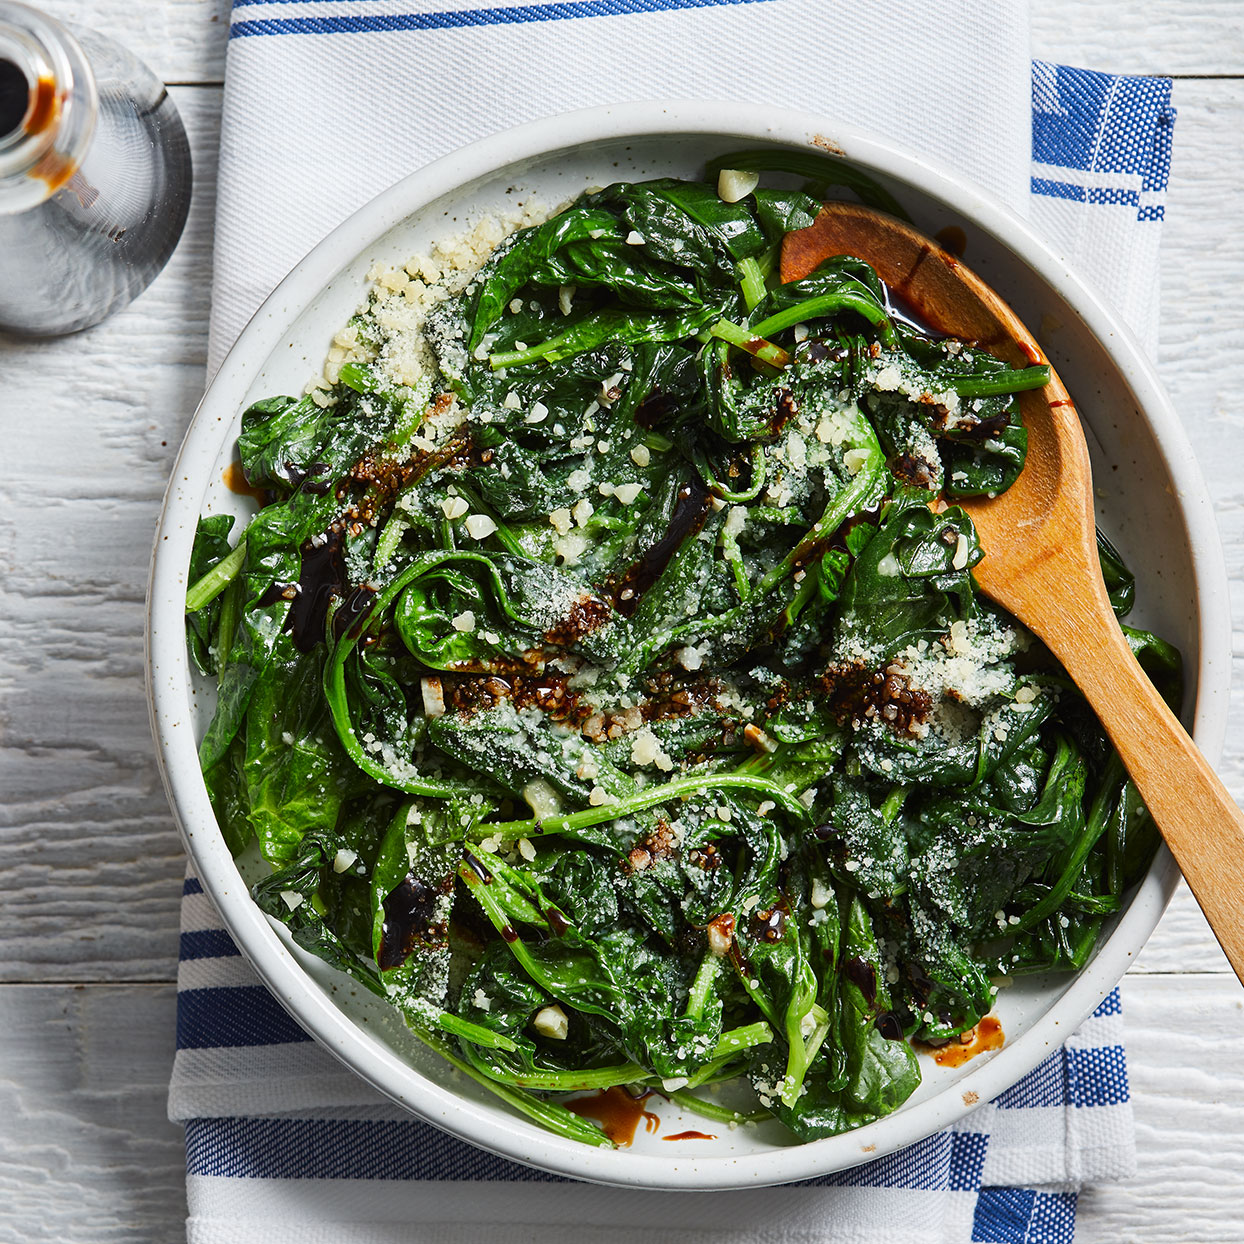 Tender spinach with a hint of garlic, Parmesan cheese and sweet balsamic vinegar makes a quick and flavorful side dish. The sturdy leaves of mature spinach hold up best during cooking.